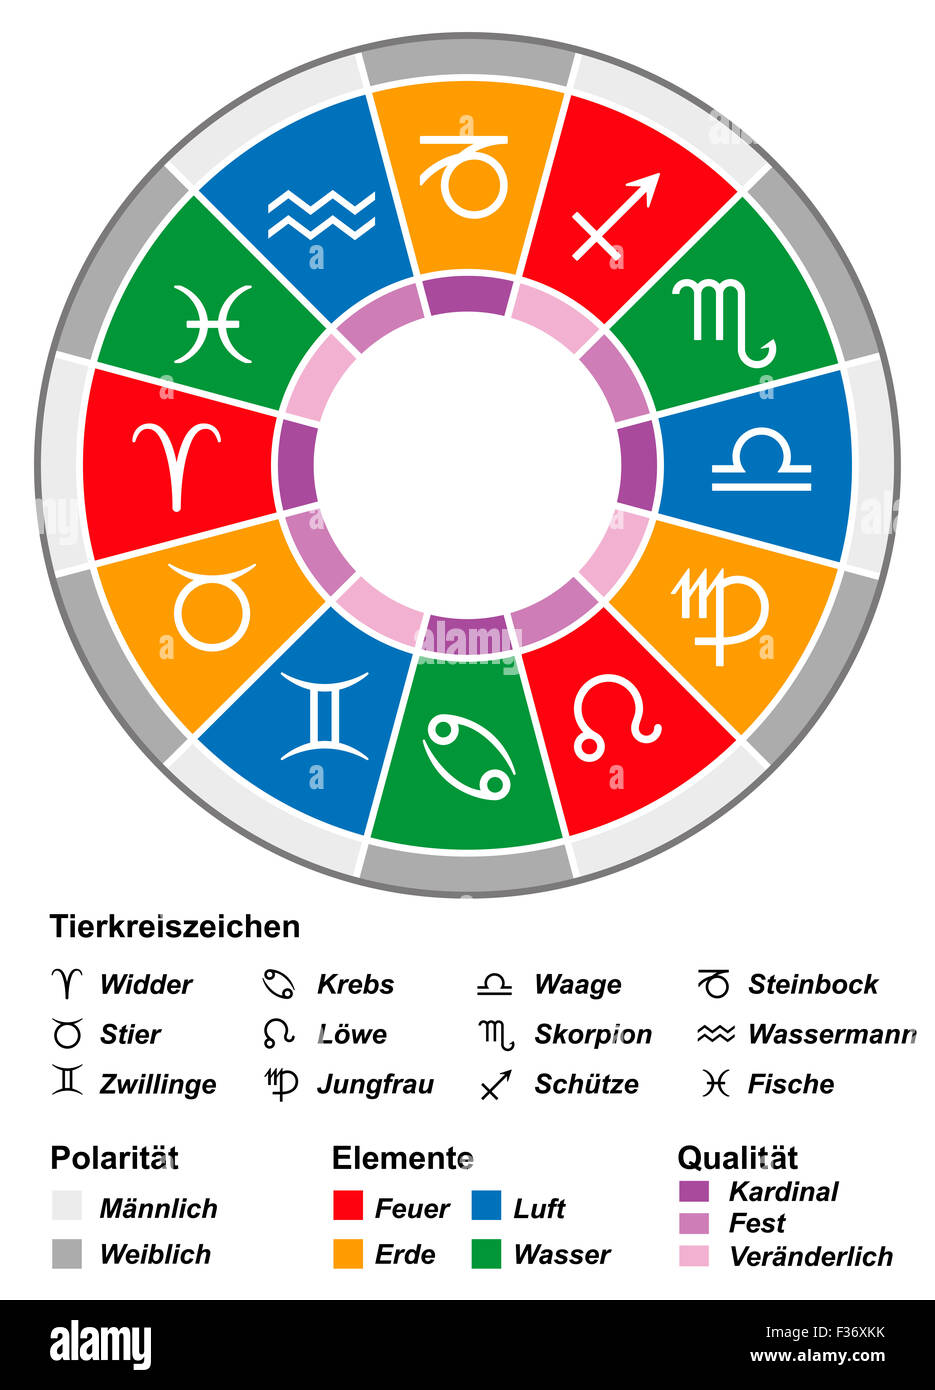 Astrology zodiac with most important divisions - duality, triplicity and quadruplicity. - Stock Image